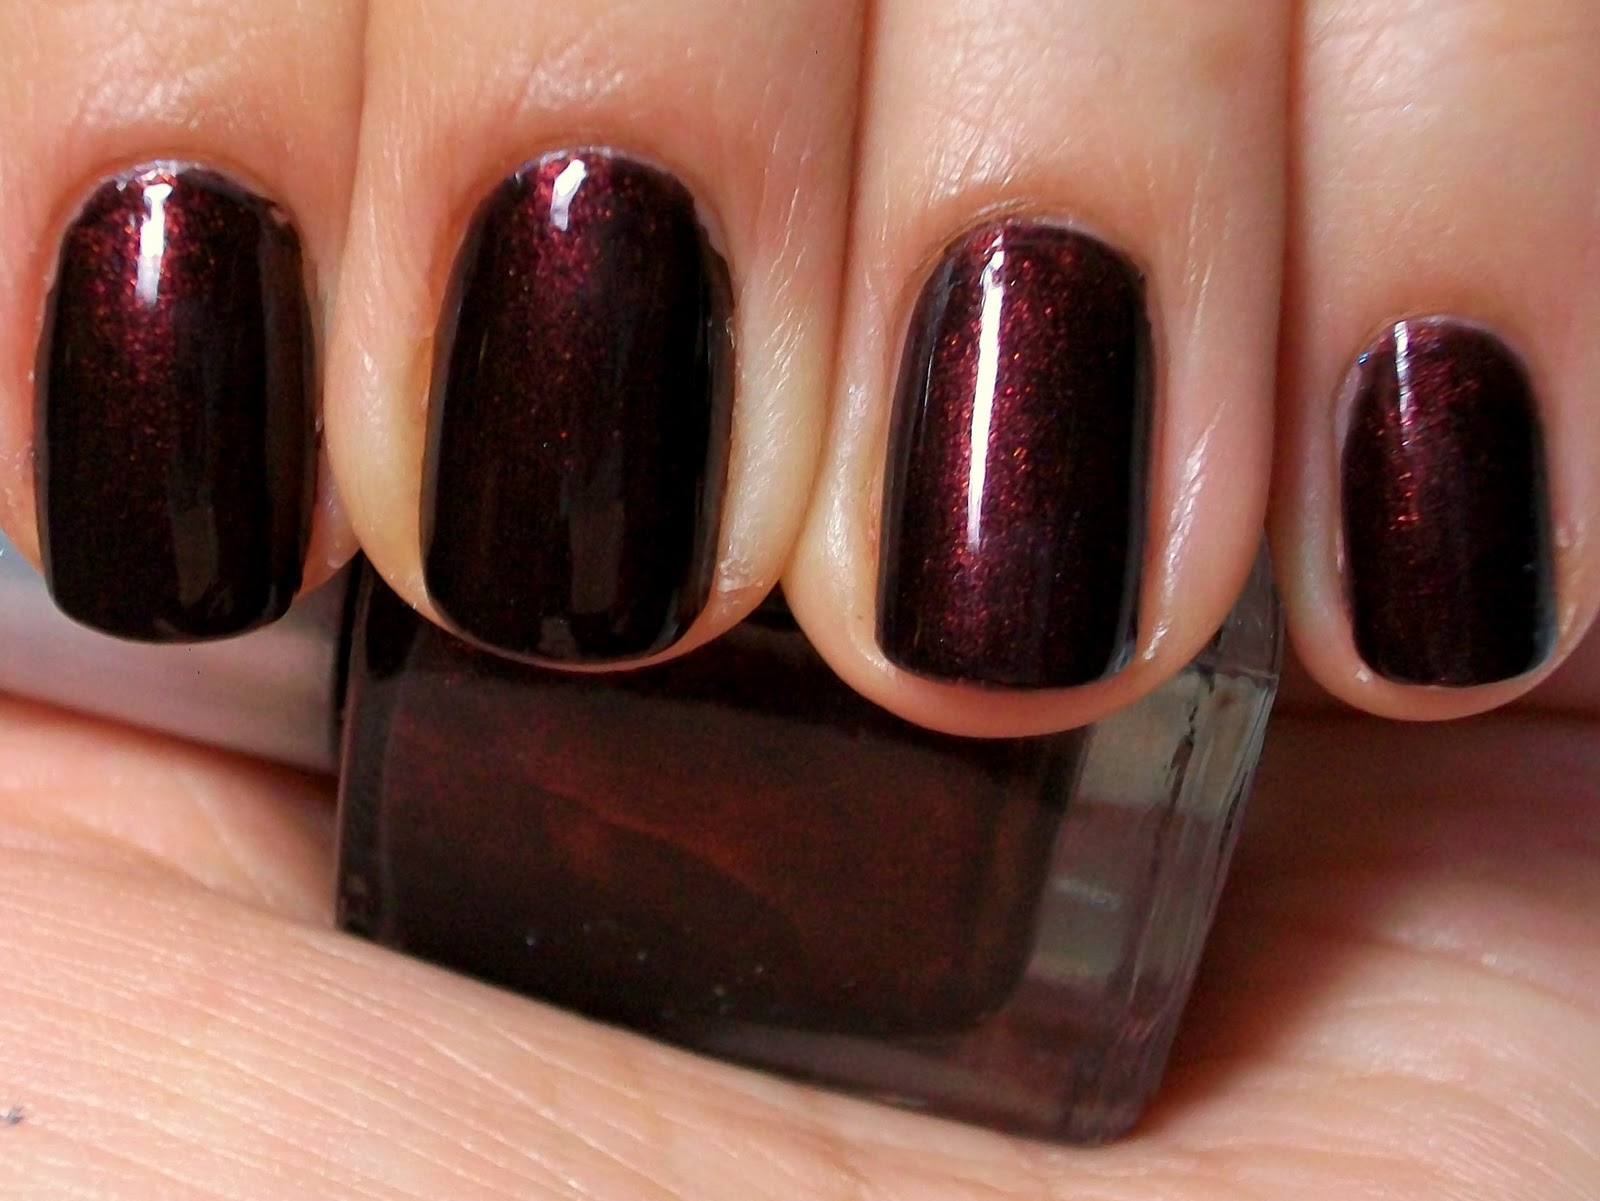 Viva Polish!: Reds, Berries, & Glitter - Oh My! featuring Cult Nails ...